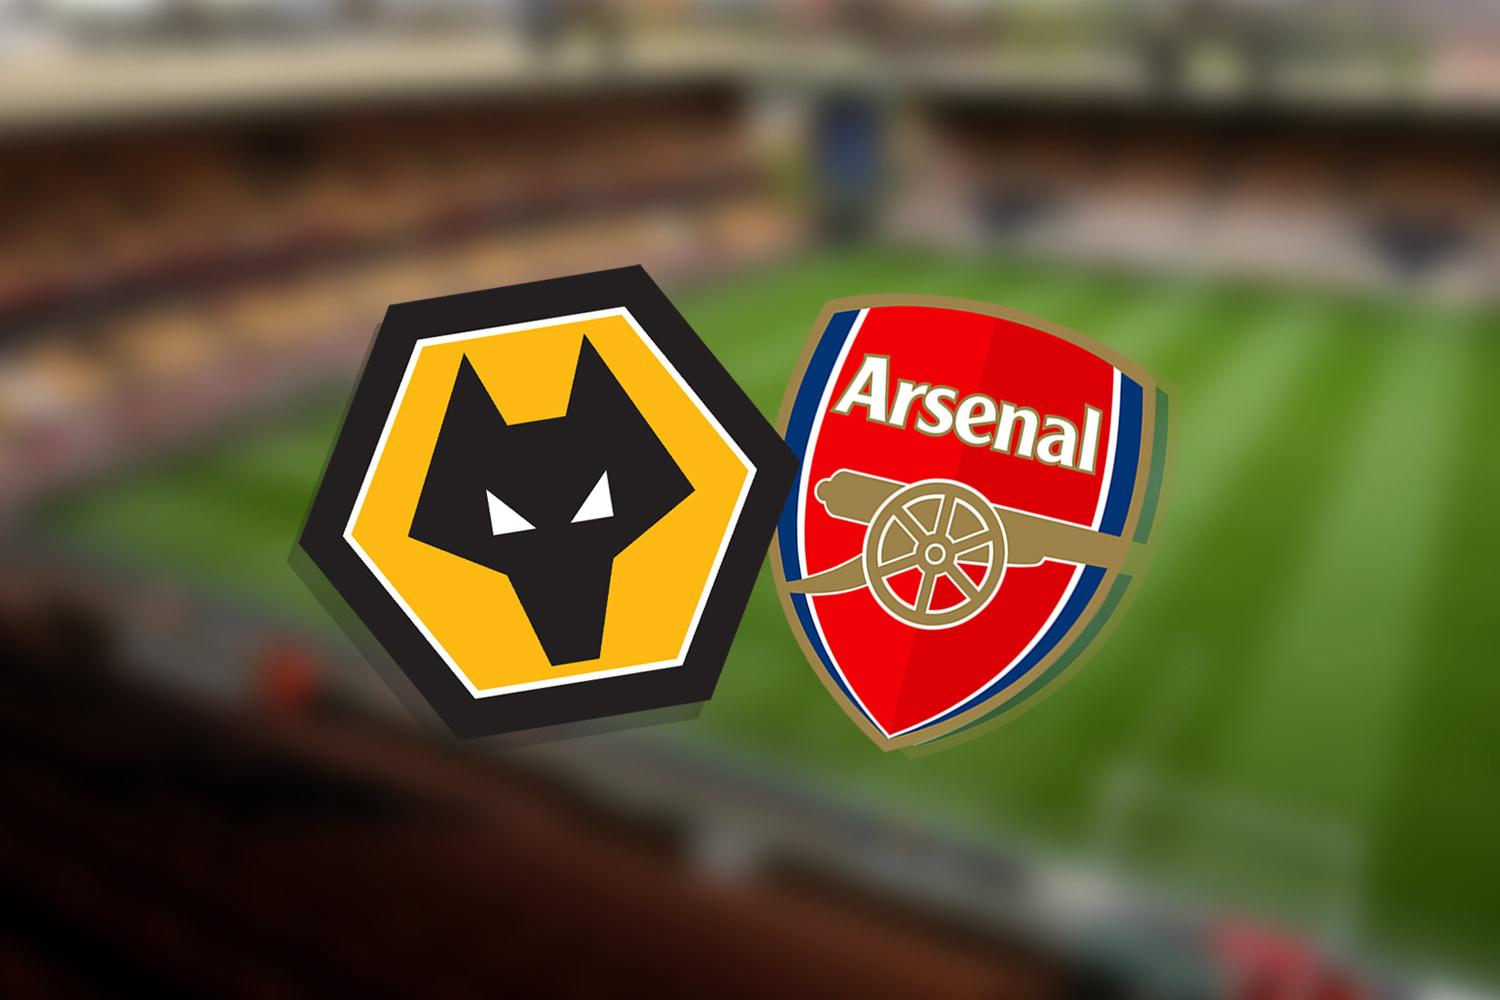 Wolves vs Arsenal: Team news, match facts and prediction